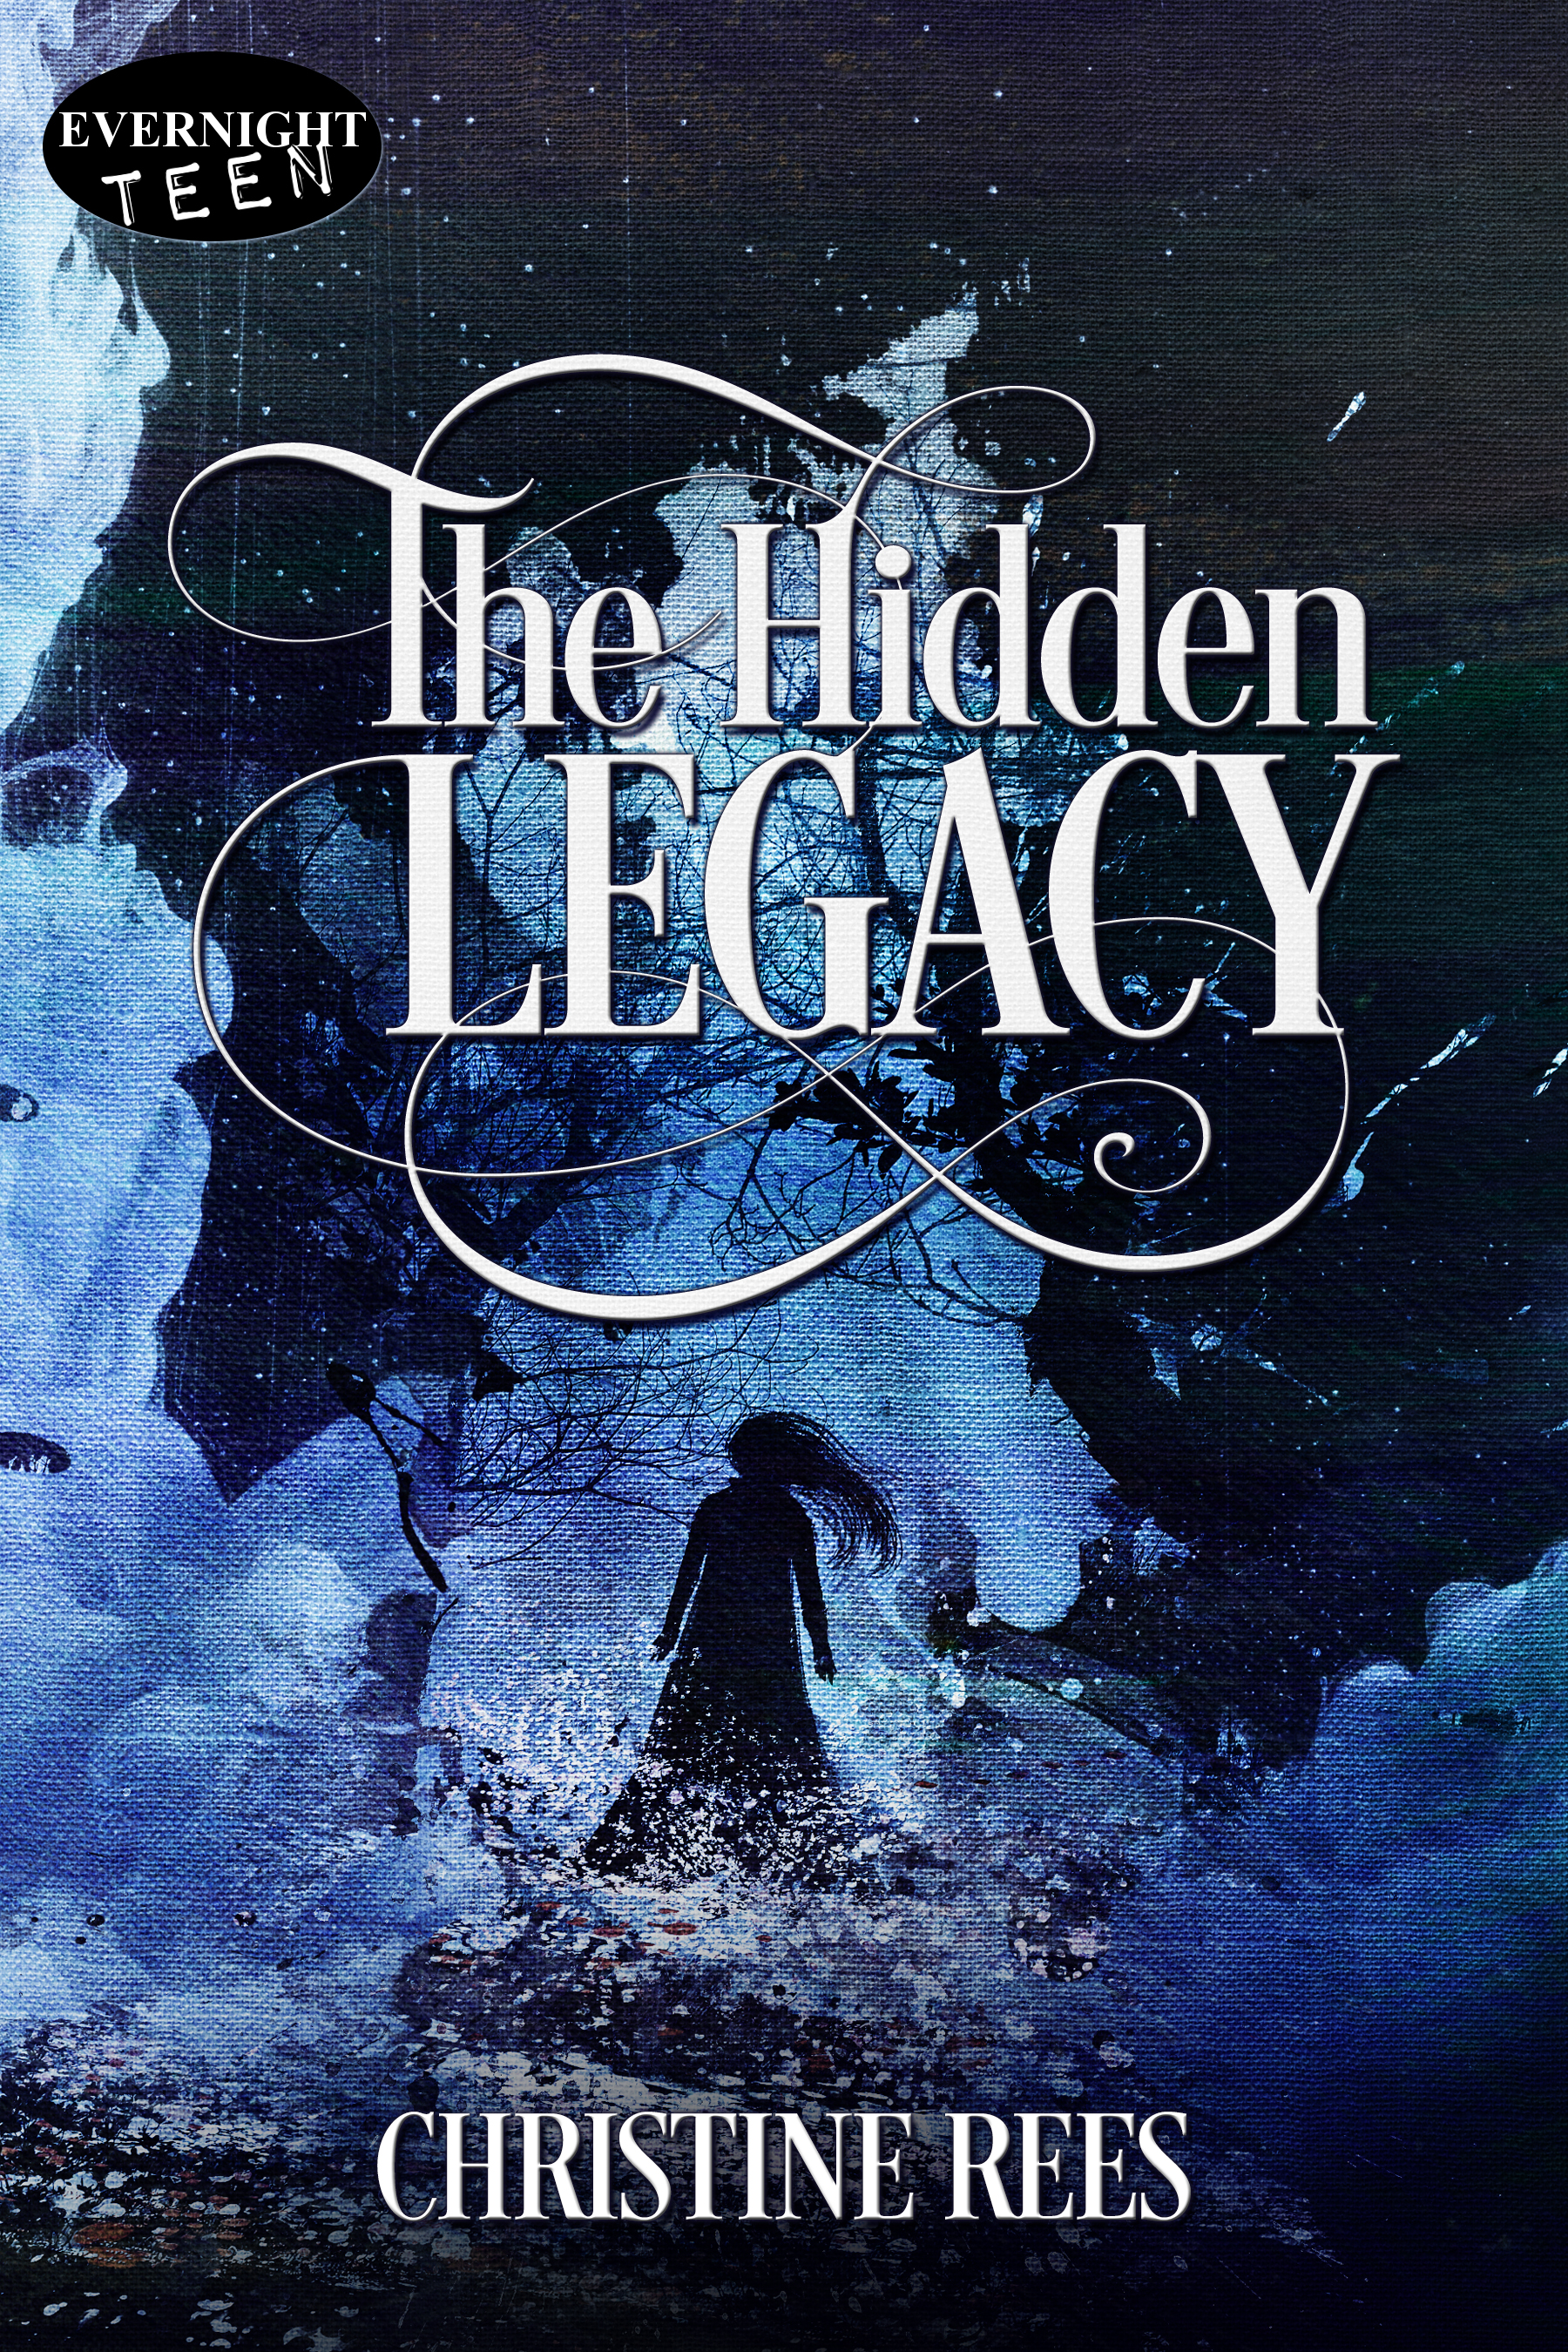 THE-HIDDEN-LEGACY-evernightpublishing-DEC2016-finalimage.jpg